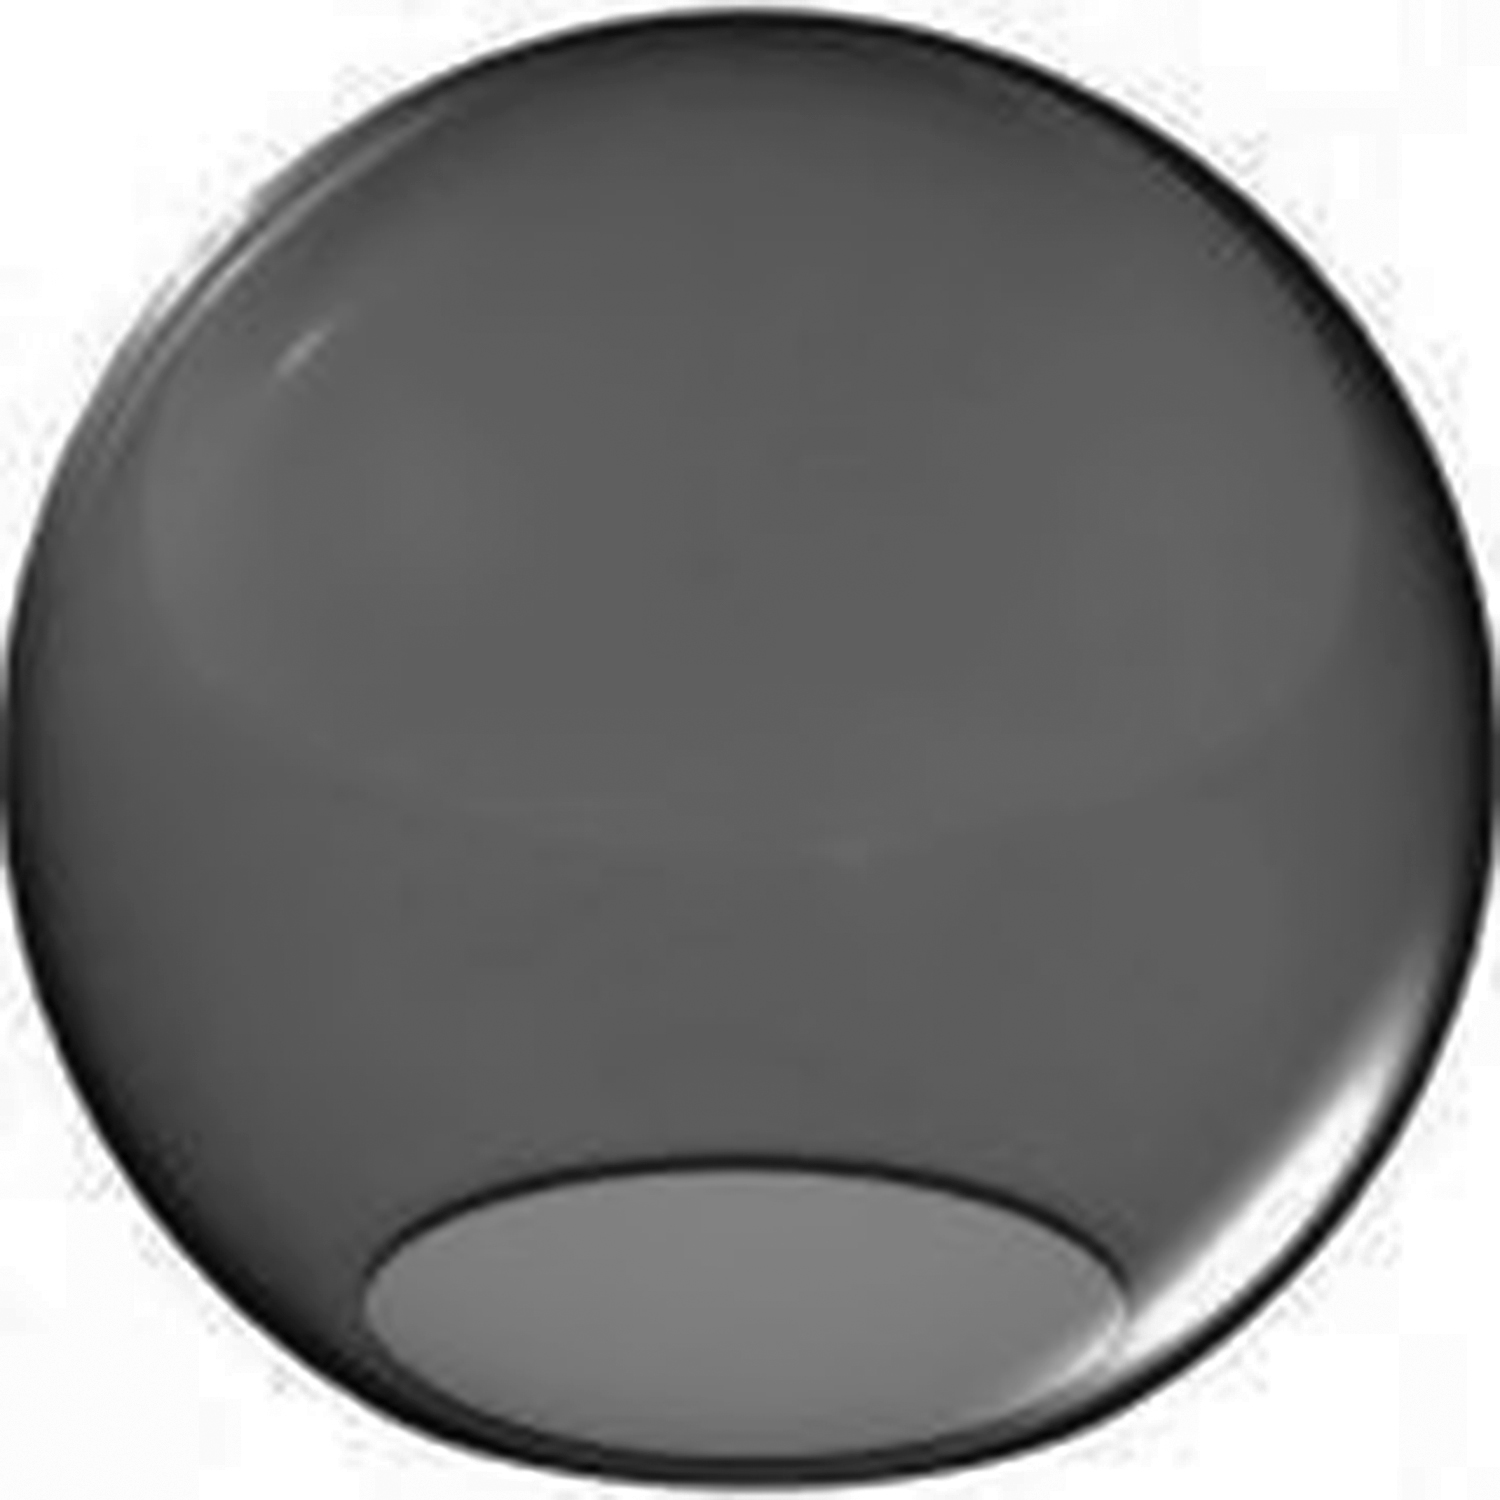 Home Round Replacement Globes 14 Inch Smoke Acrylic Lamp Post With 5 25 Opening